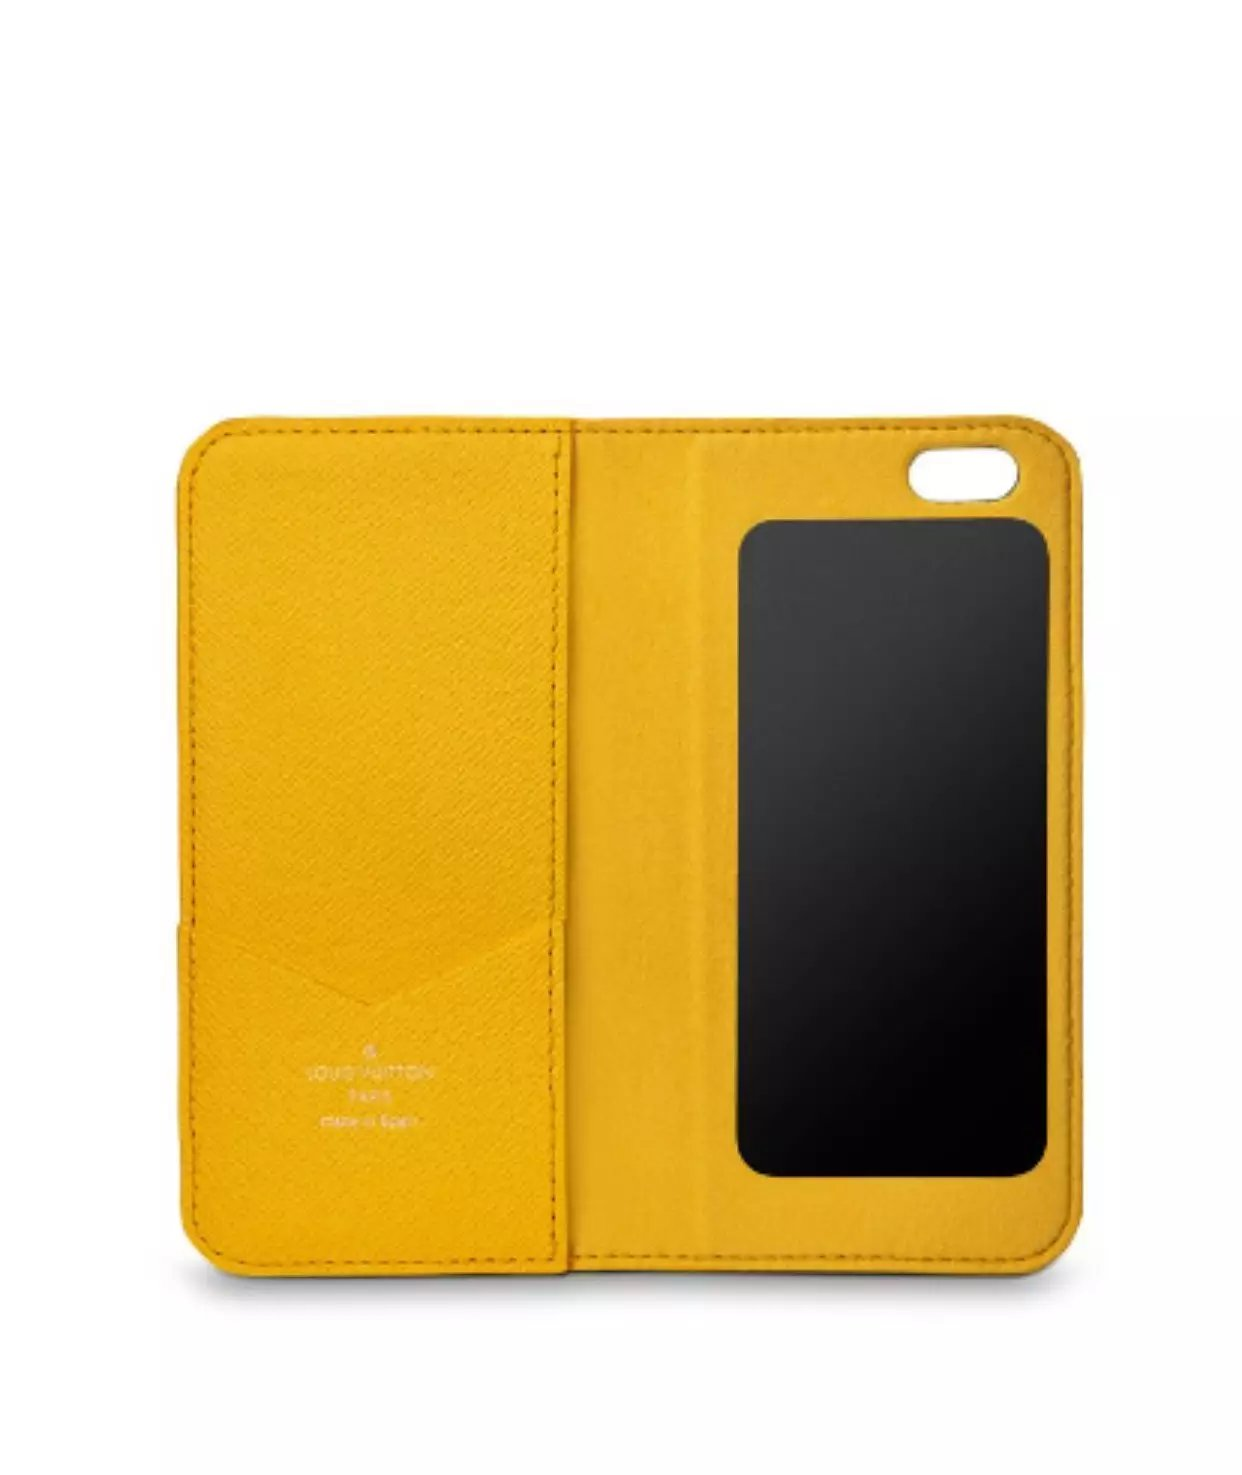 eigene iphone hülle iphone case selber machen Louis Vuitton iphone 8 Plus hüllen handy gestalten hülle für iphone 8 Plus s iphone 8 Plus a8 Plus apple iphone 8 Plus etui leder iphone 8 Plus hülle transparent hülle iphone 8 Plus 8 Pluslber gestalten